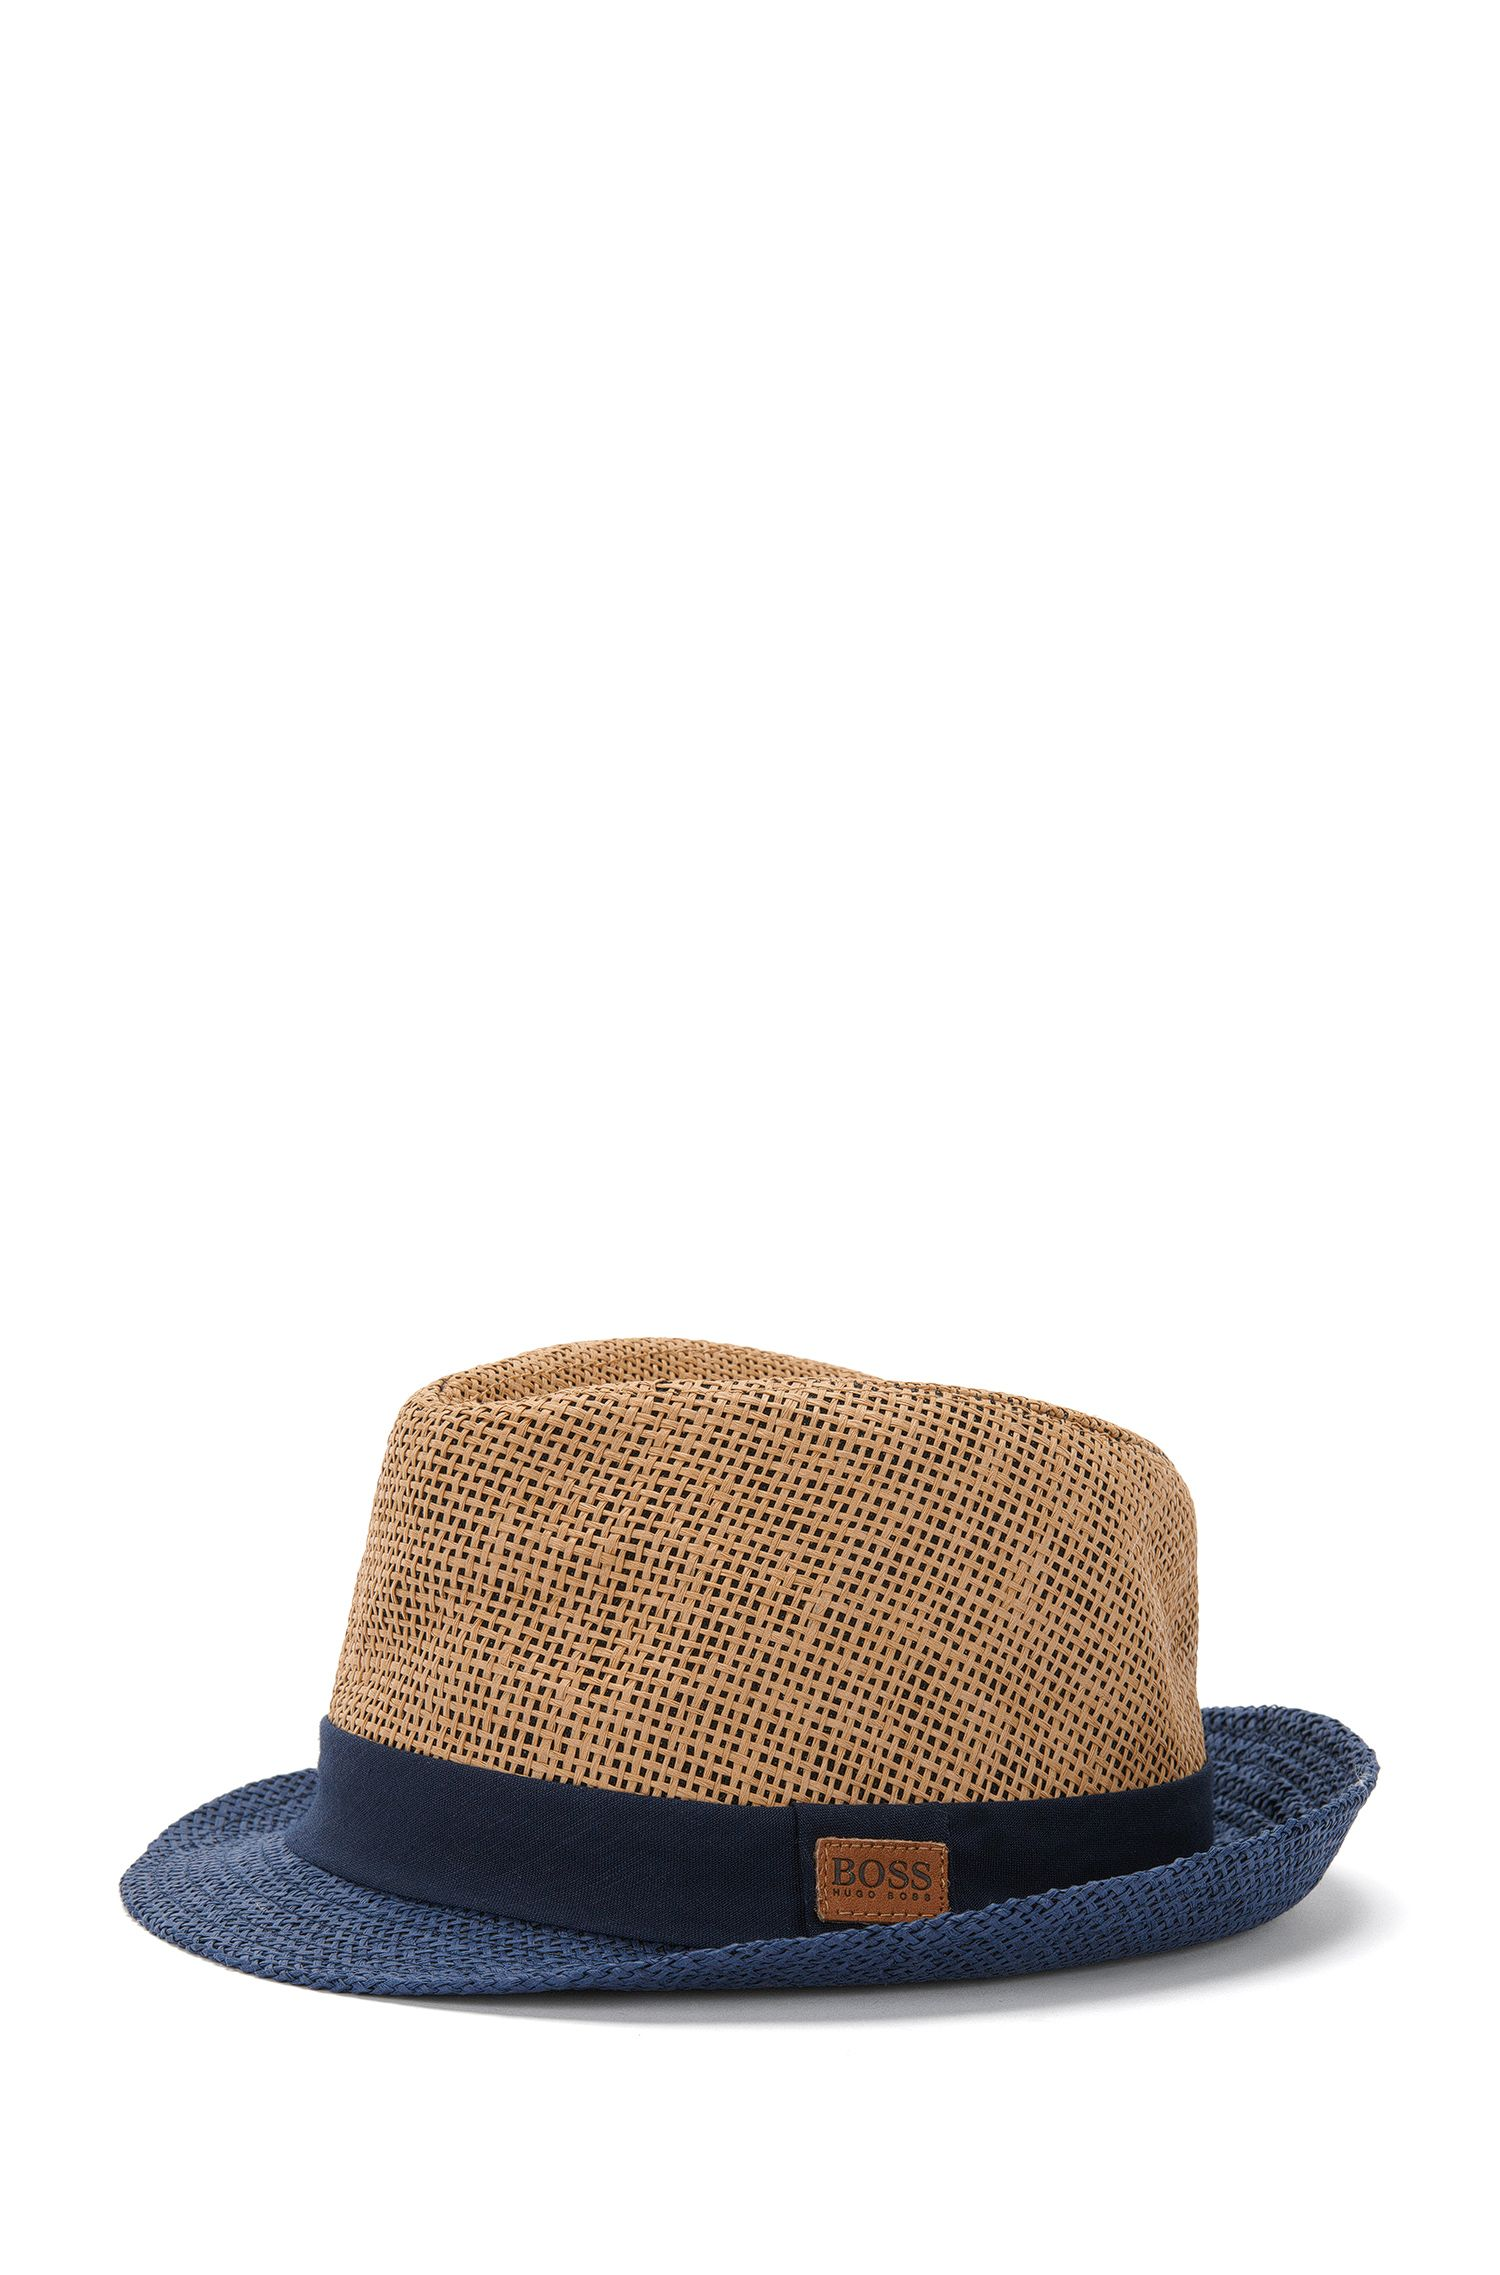 'J21164' | Boys Faux Straw Fedora